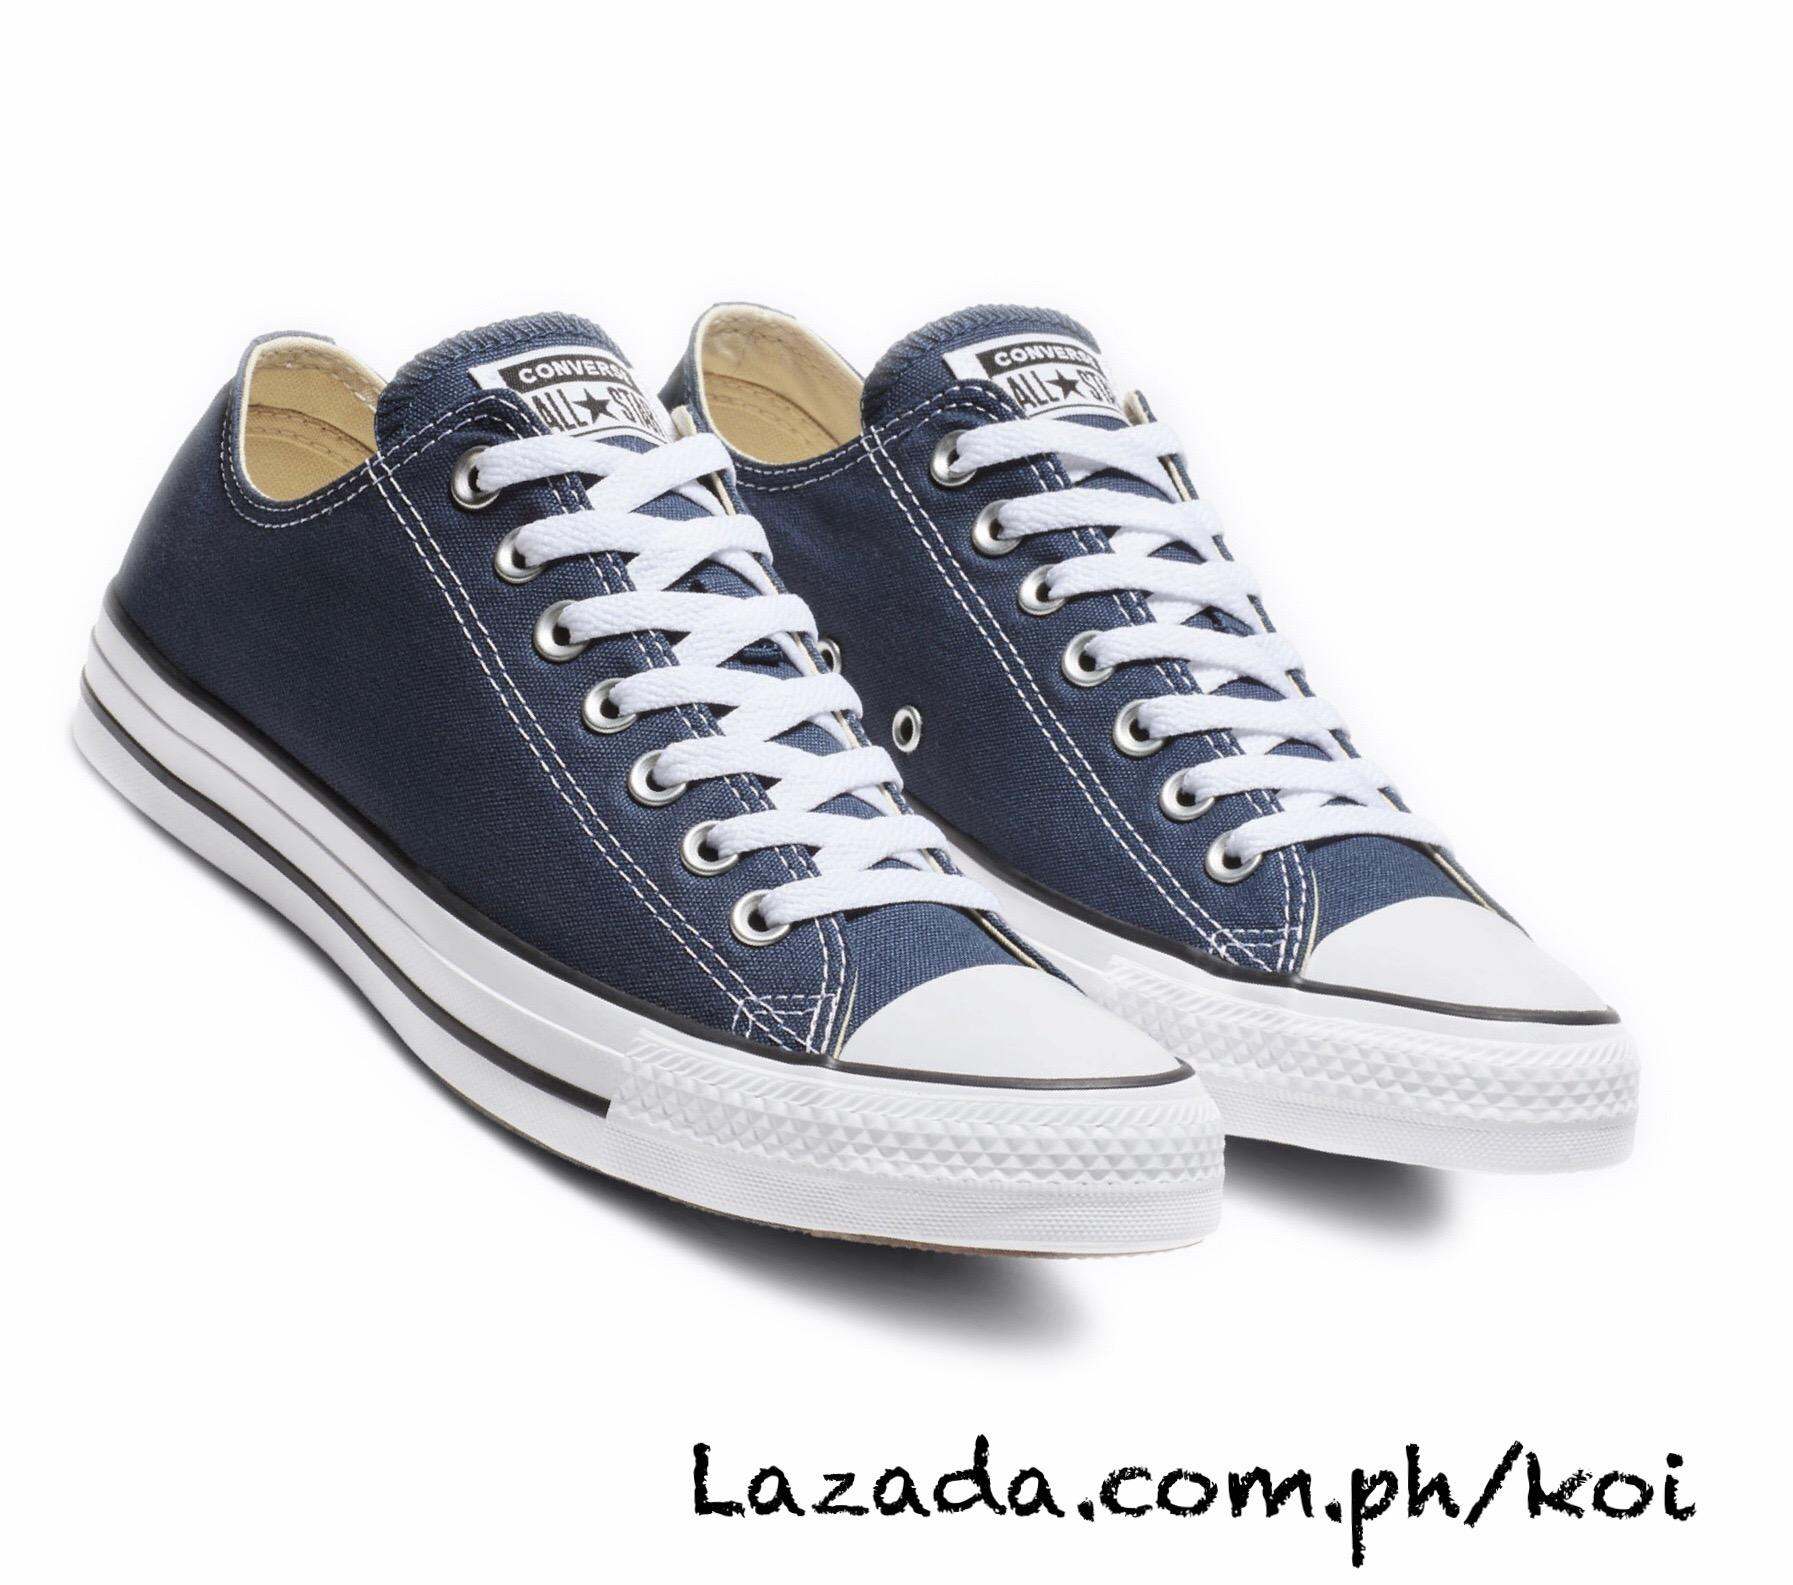 7604397a316f Converse Philippines  Converse price list - Shoes for Men   Women ...